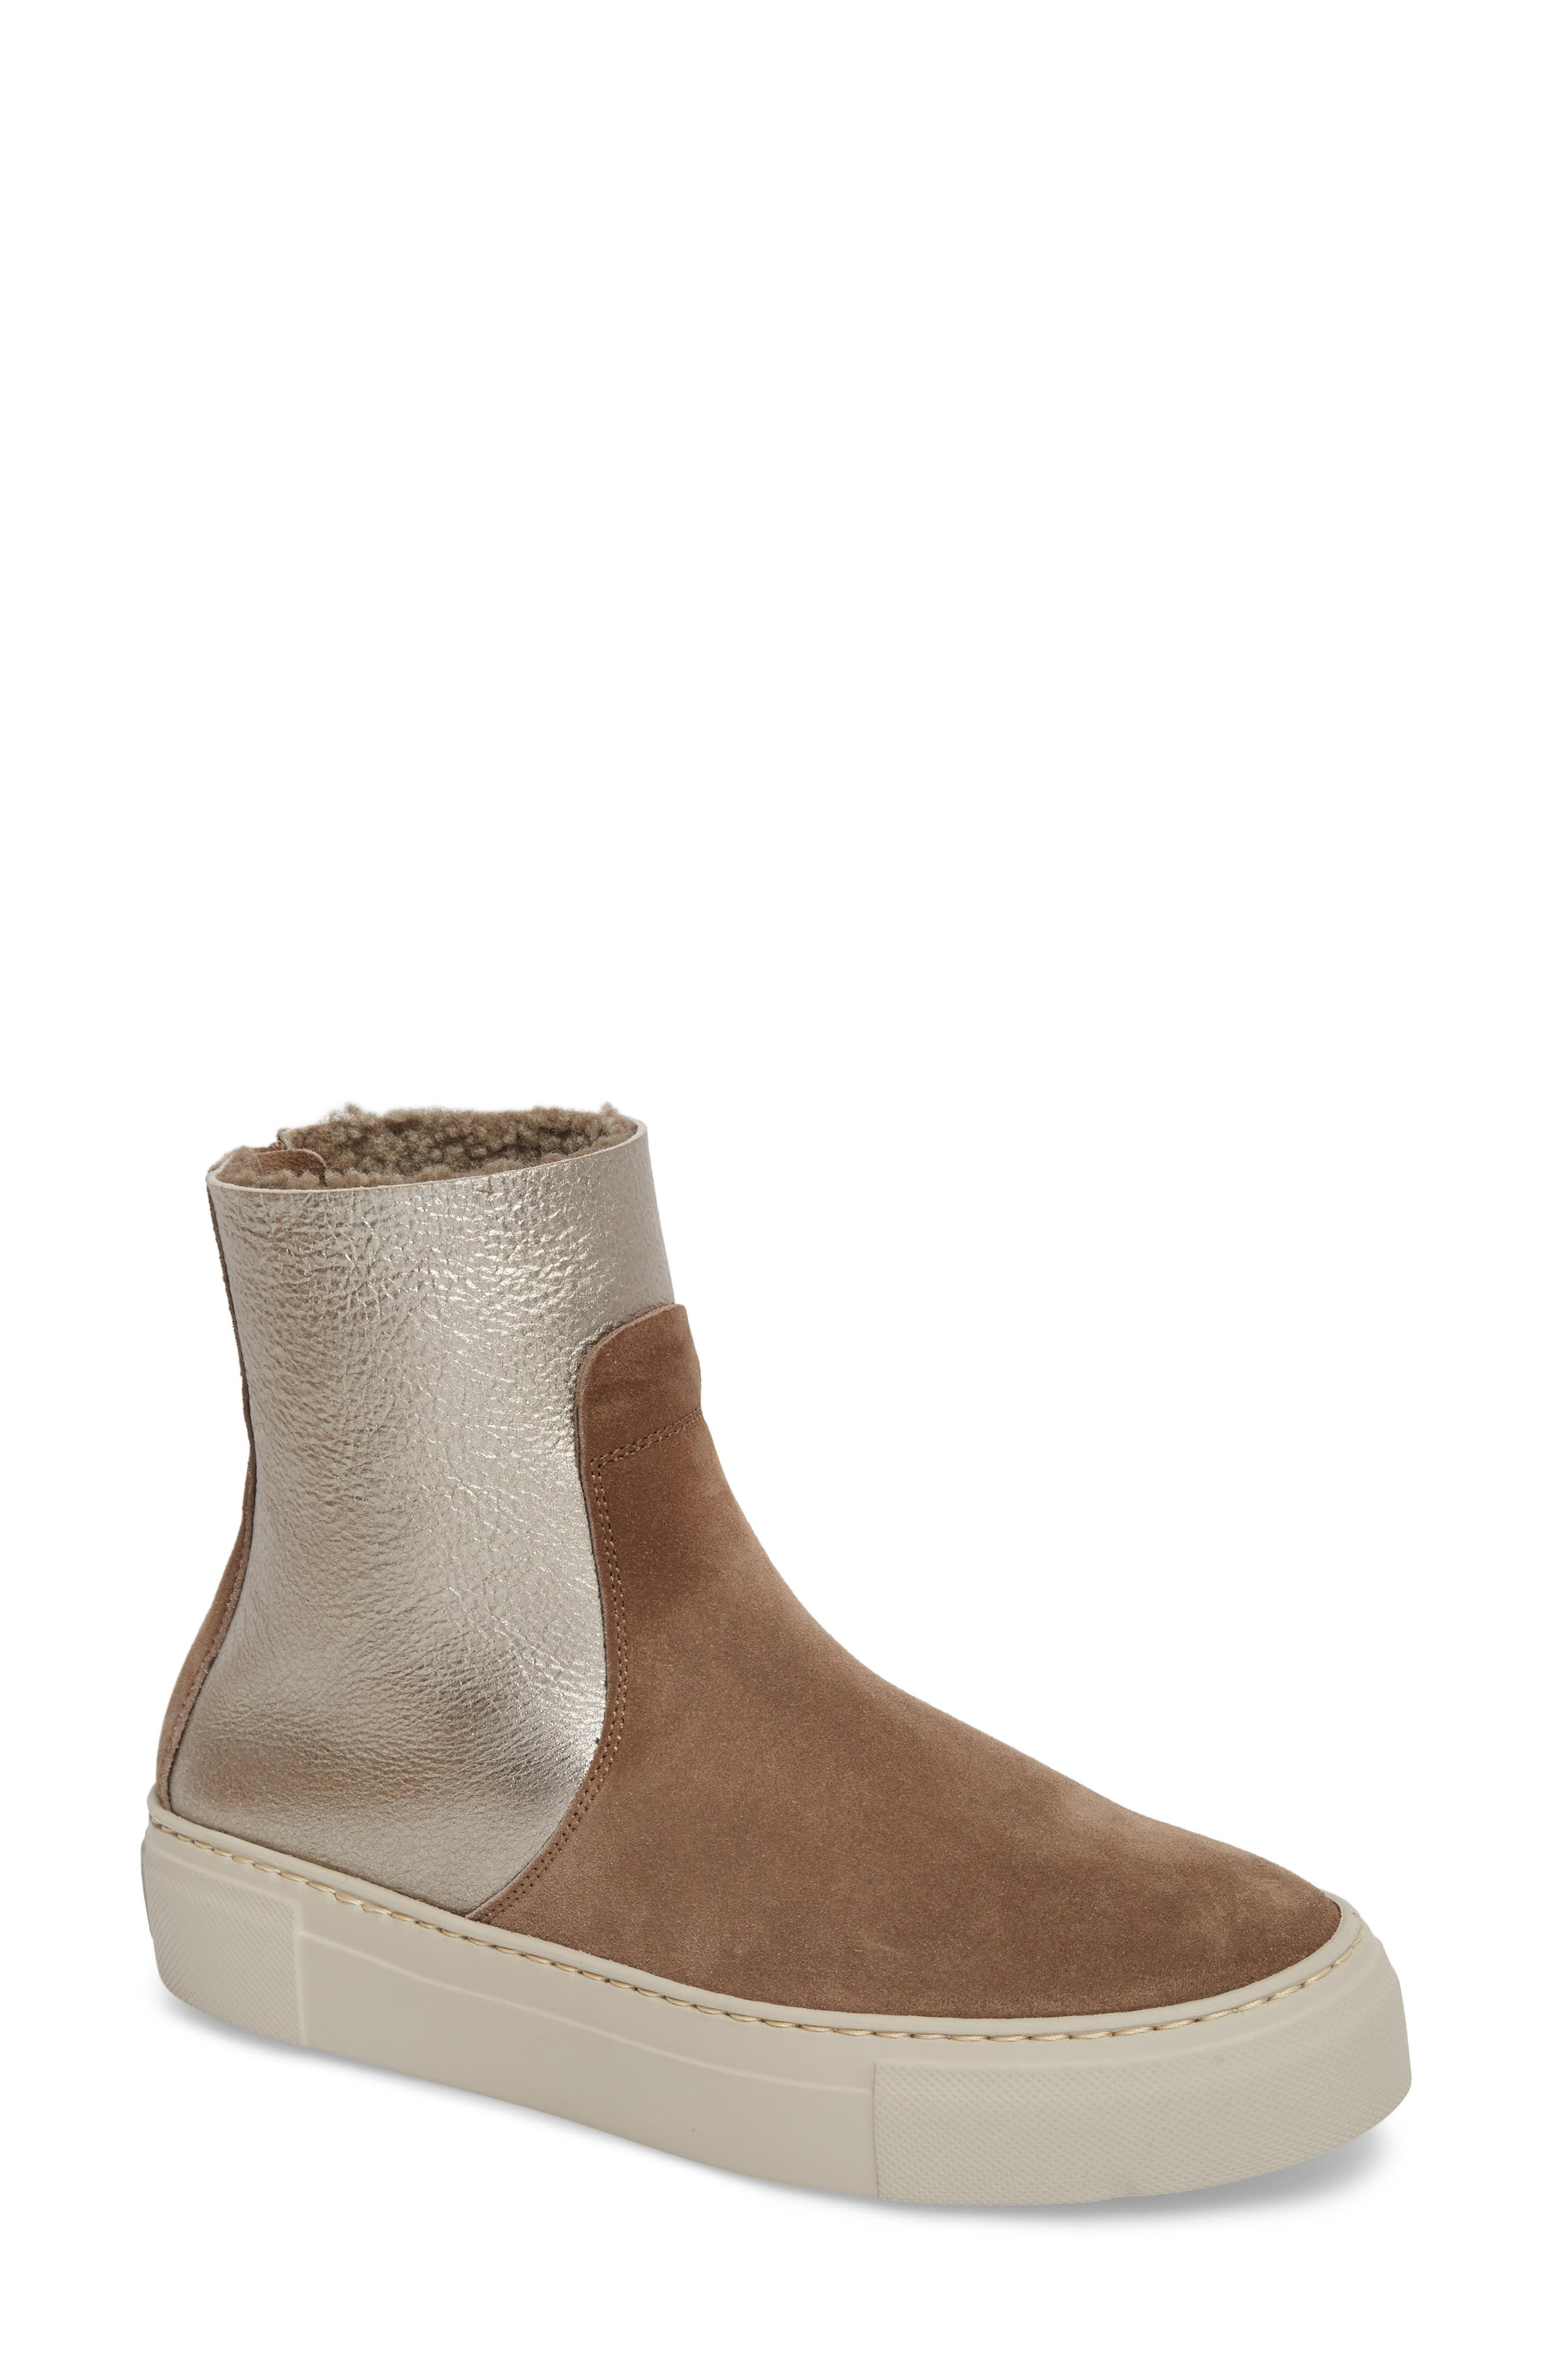 Main Image - AGL Sport Genuine Shearling Lined Bootie (Women)